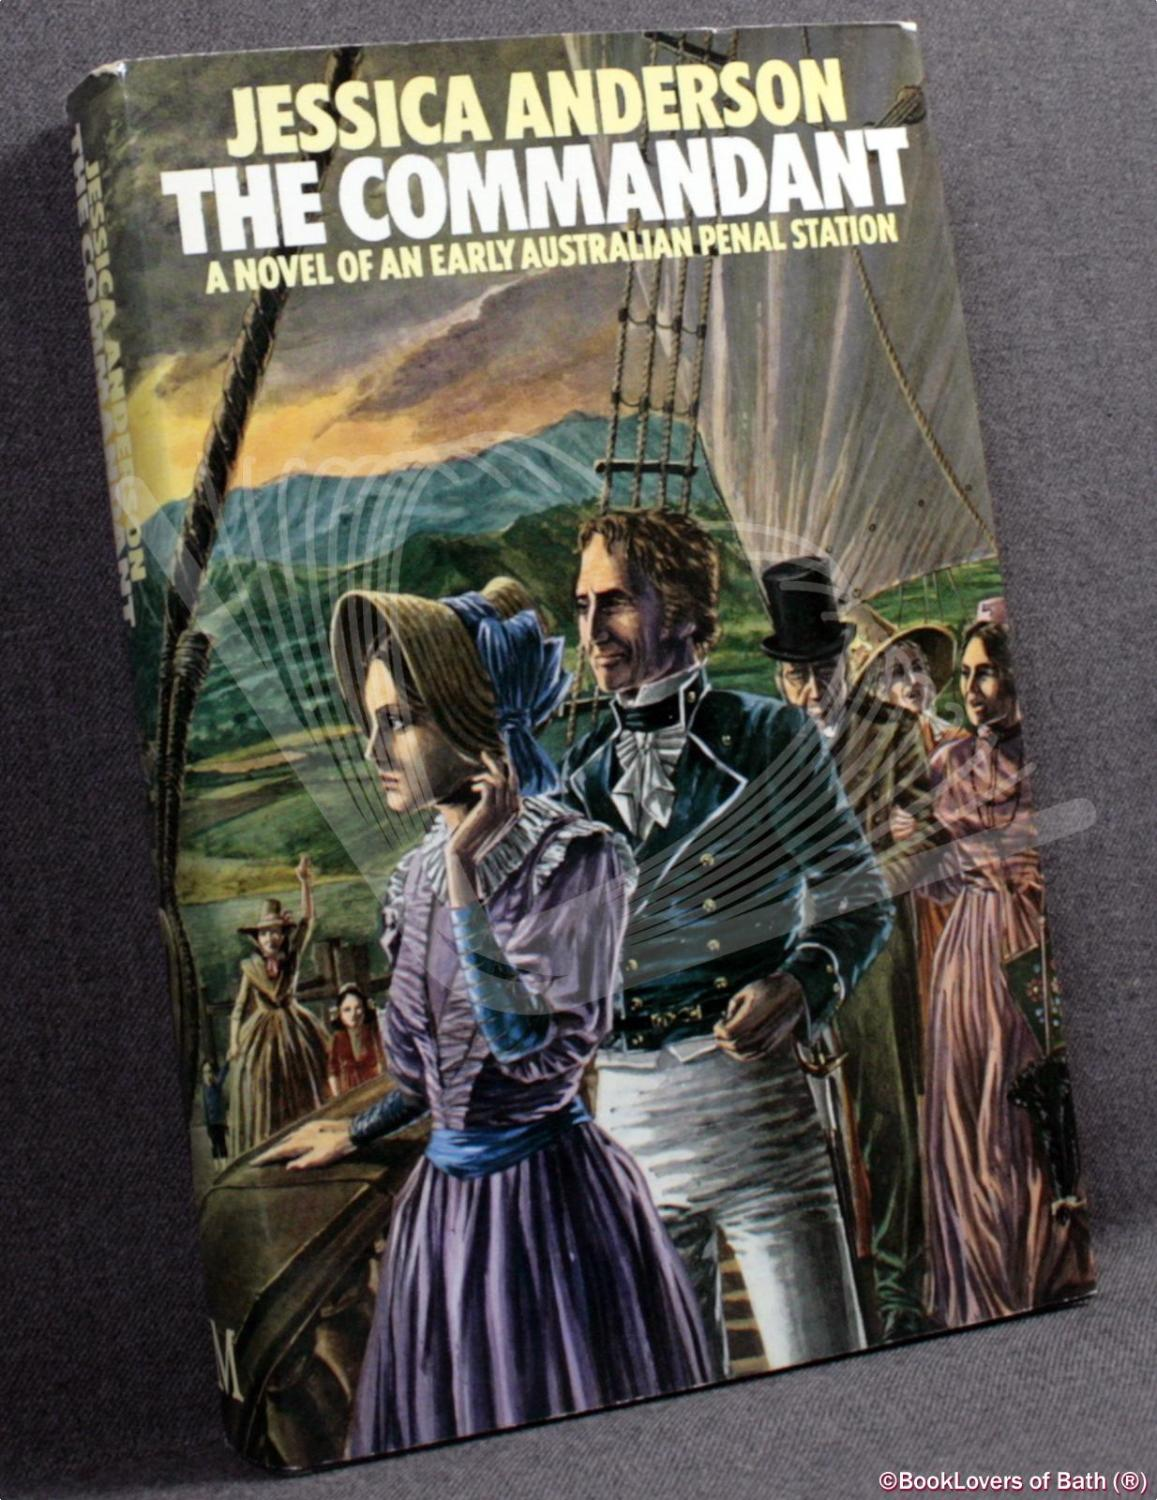 The Commandant: Jessica Anderson